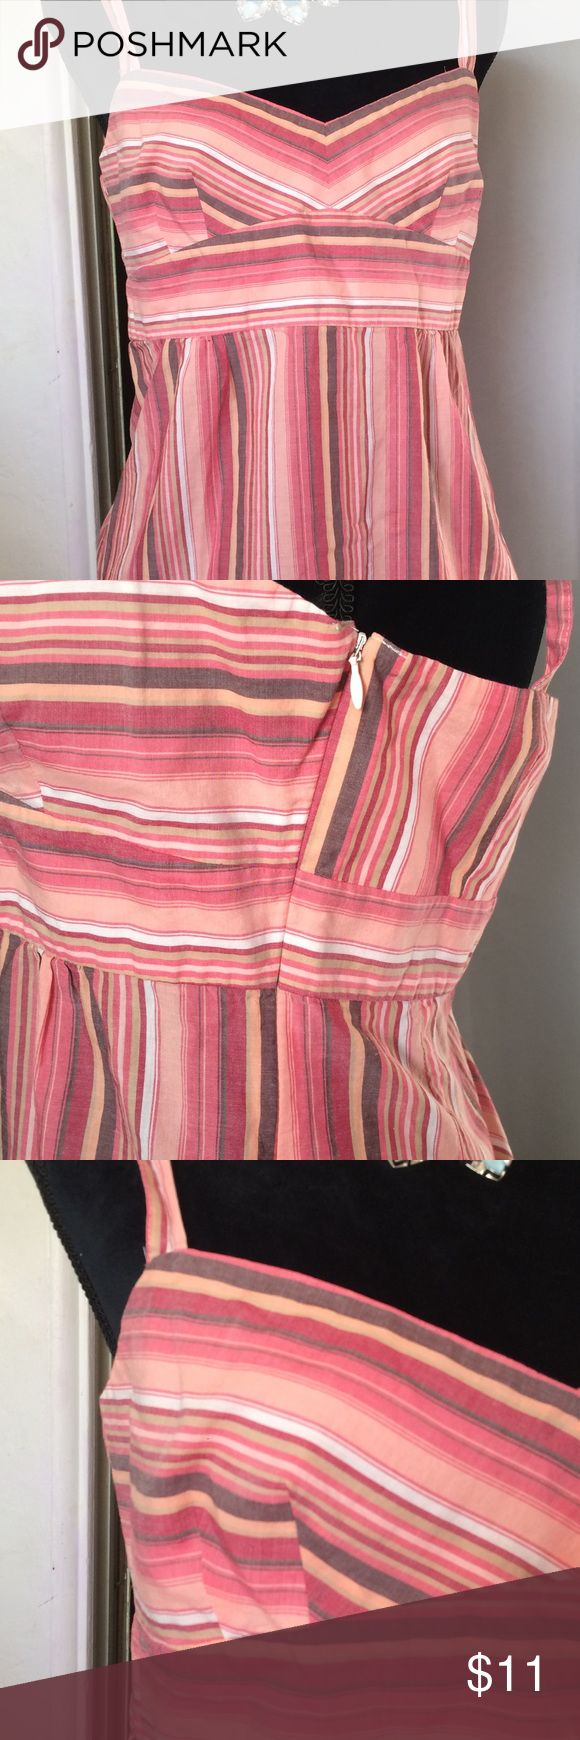 Ann Taylor Loft striped summer top size 8 This is a really cute Ann Taylor loft top it's made of 100% cotton it's got spaghetti straps cute striped bought is in vertical striped bottom part, it has a hidden zipper on the side and The bodice is lined. Size 8  machine washable anne taylor loft Tops Camisoles